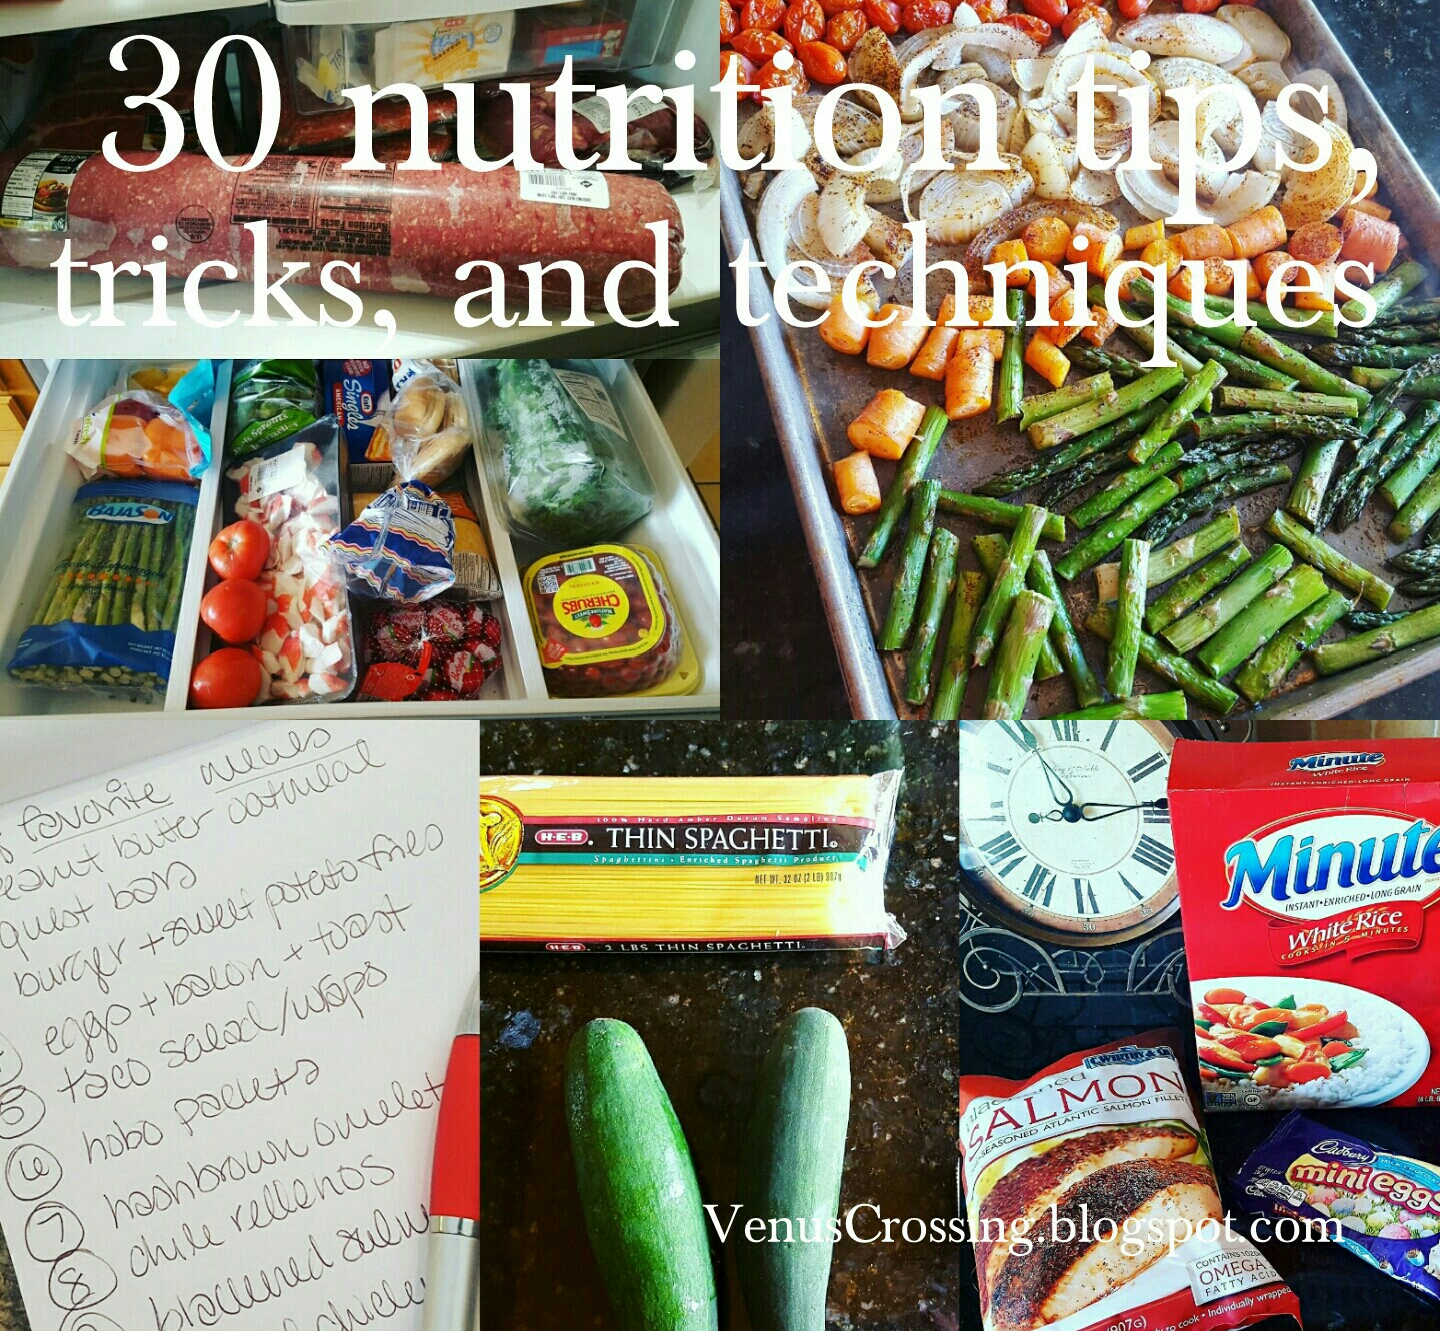 Tips And Tricks To Encourage Better Nutrition: Venus Crossing With Liss: 30 Nutrition Tips, Tricks, And